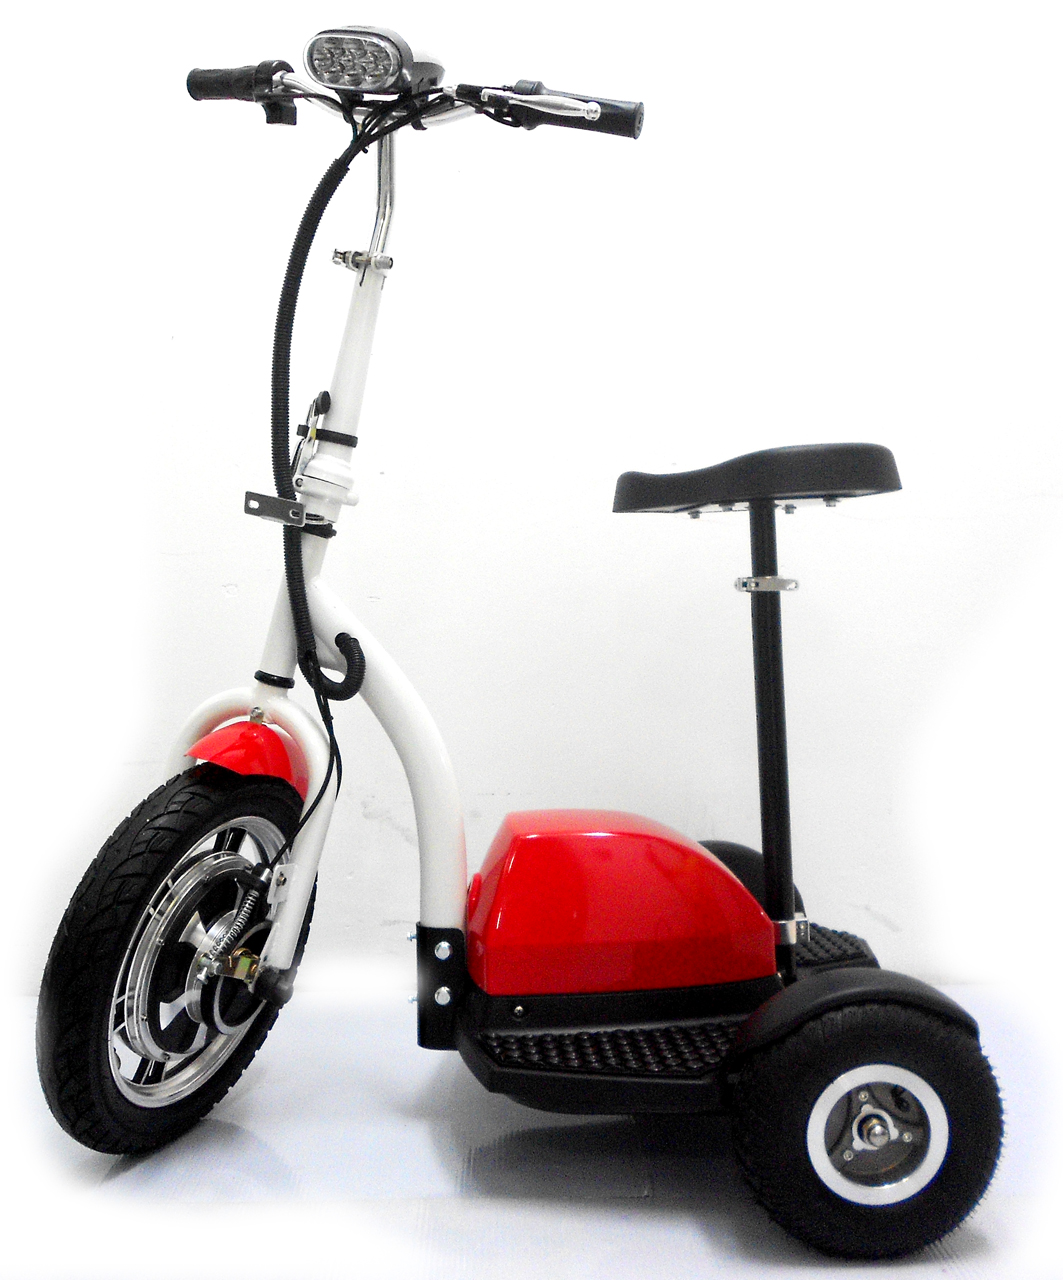 Kuala Lumpur Kl Electric Scooter 3 Wheel 500w Electric Scooter Bike From Fresco Cocoa Supply Plt